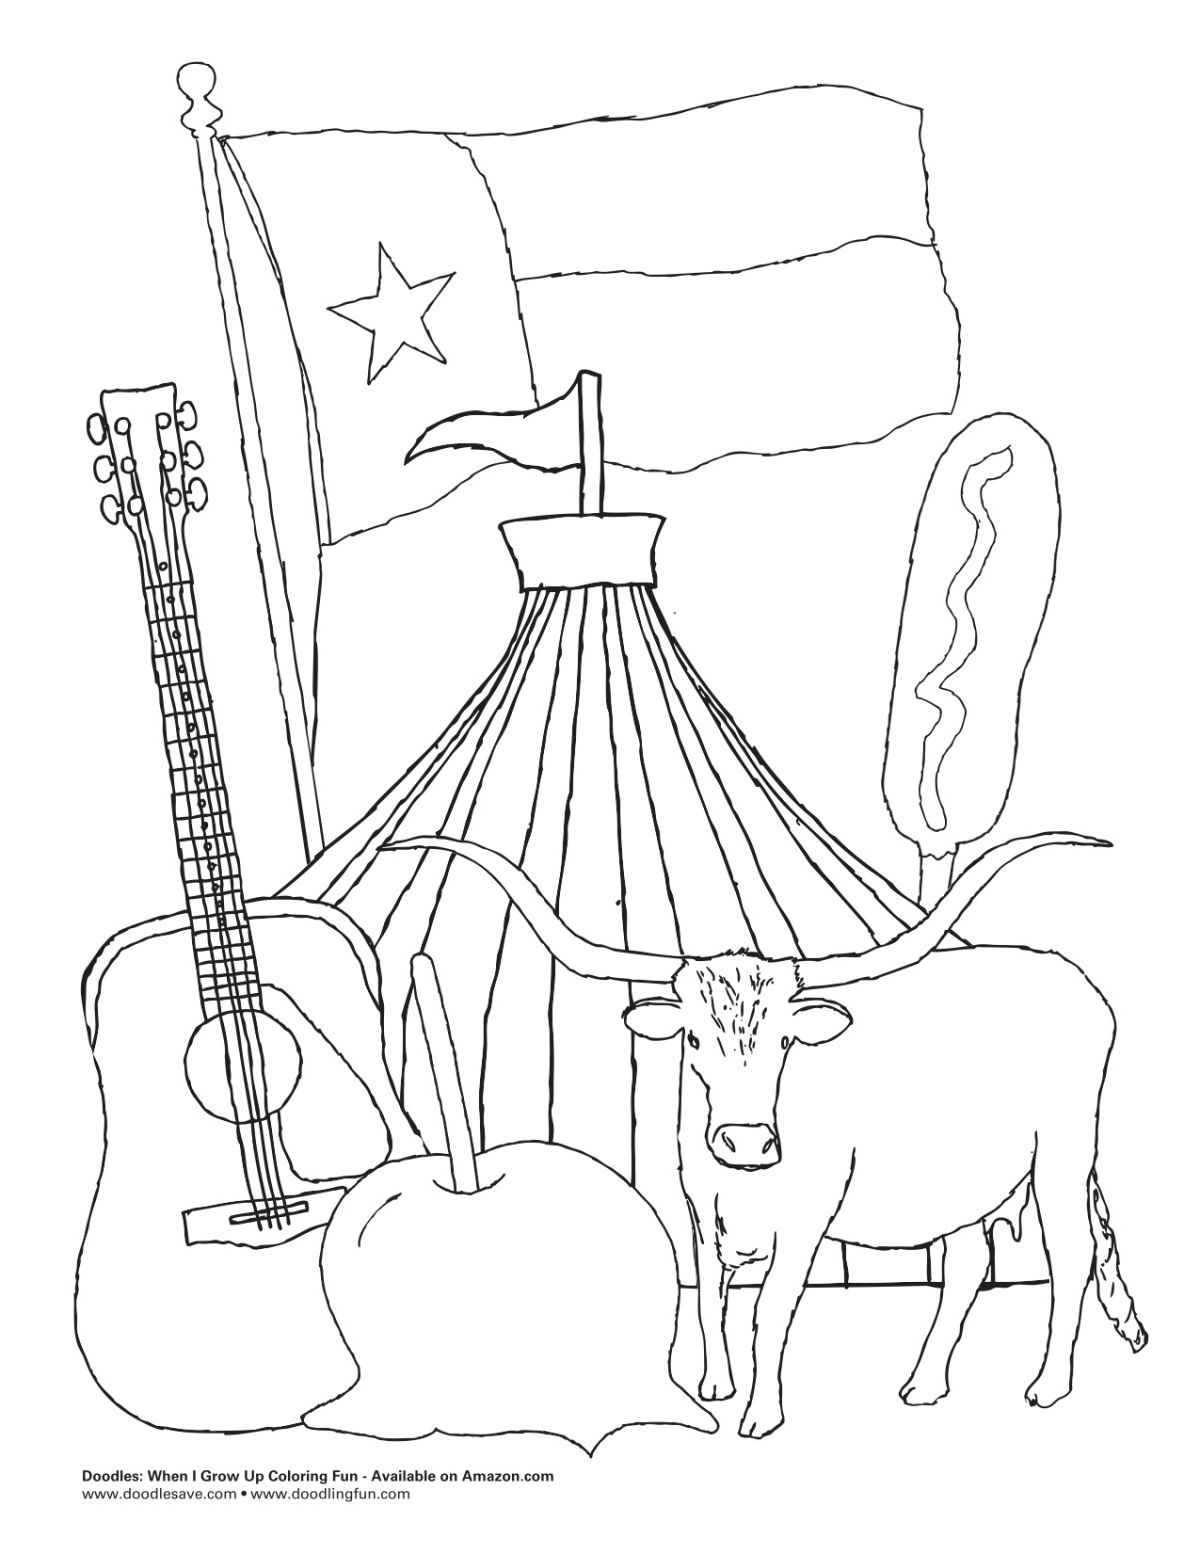 Pin on Coloring:Texas Coloring Book